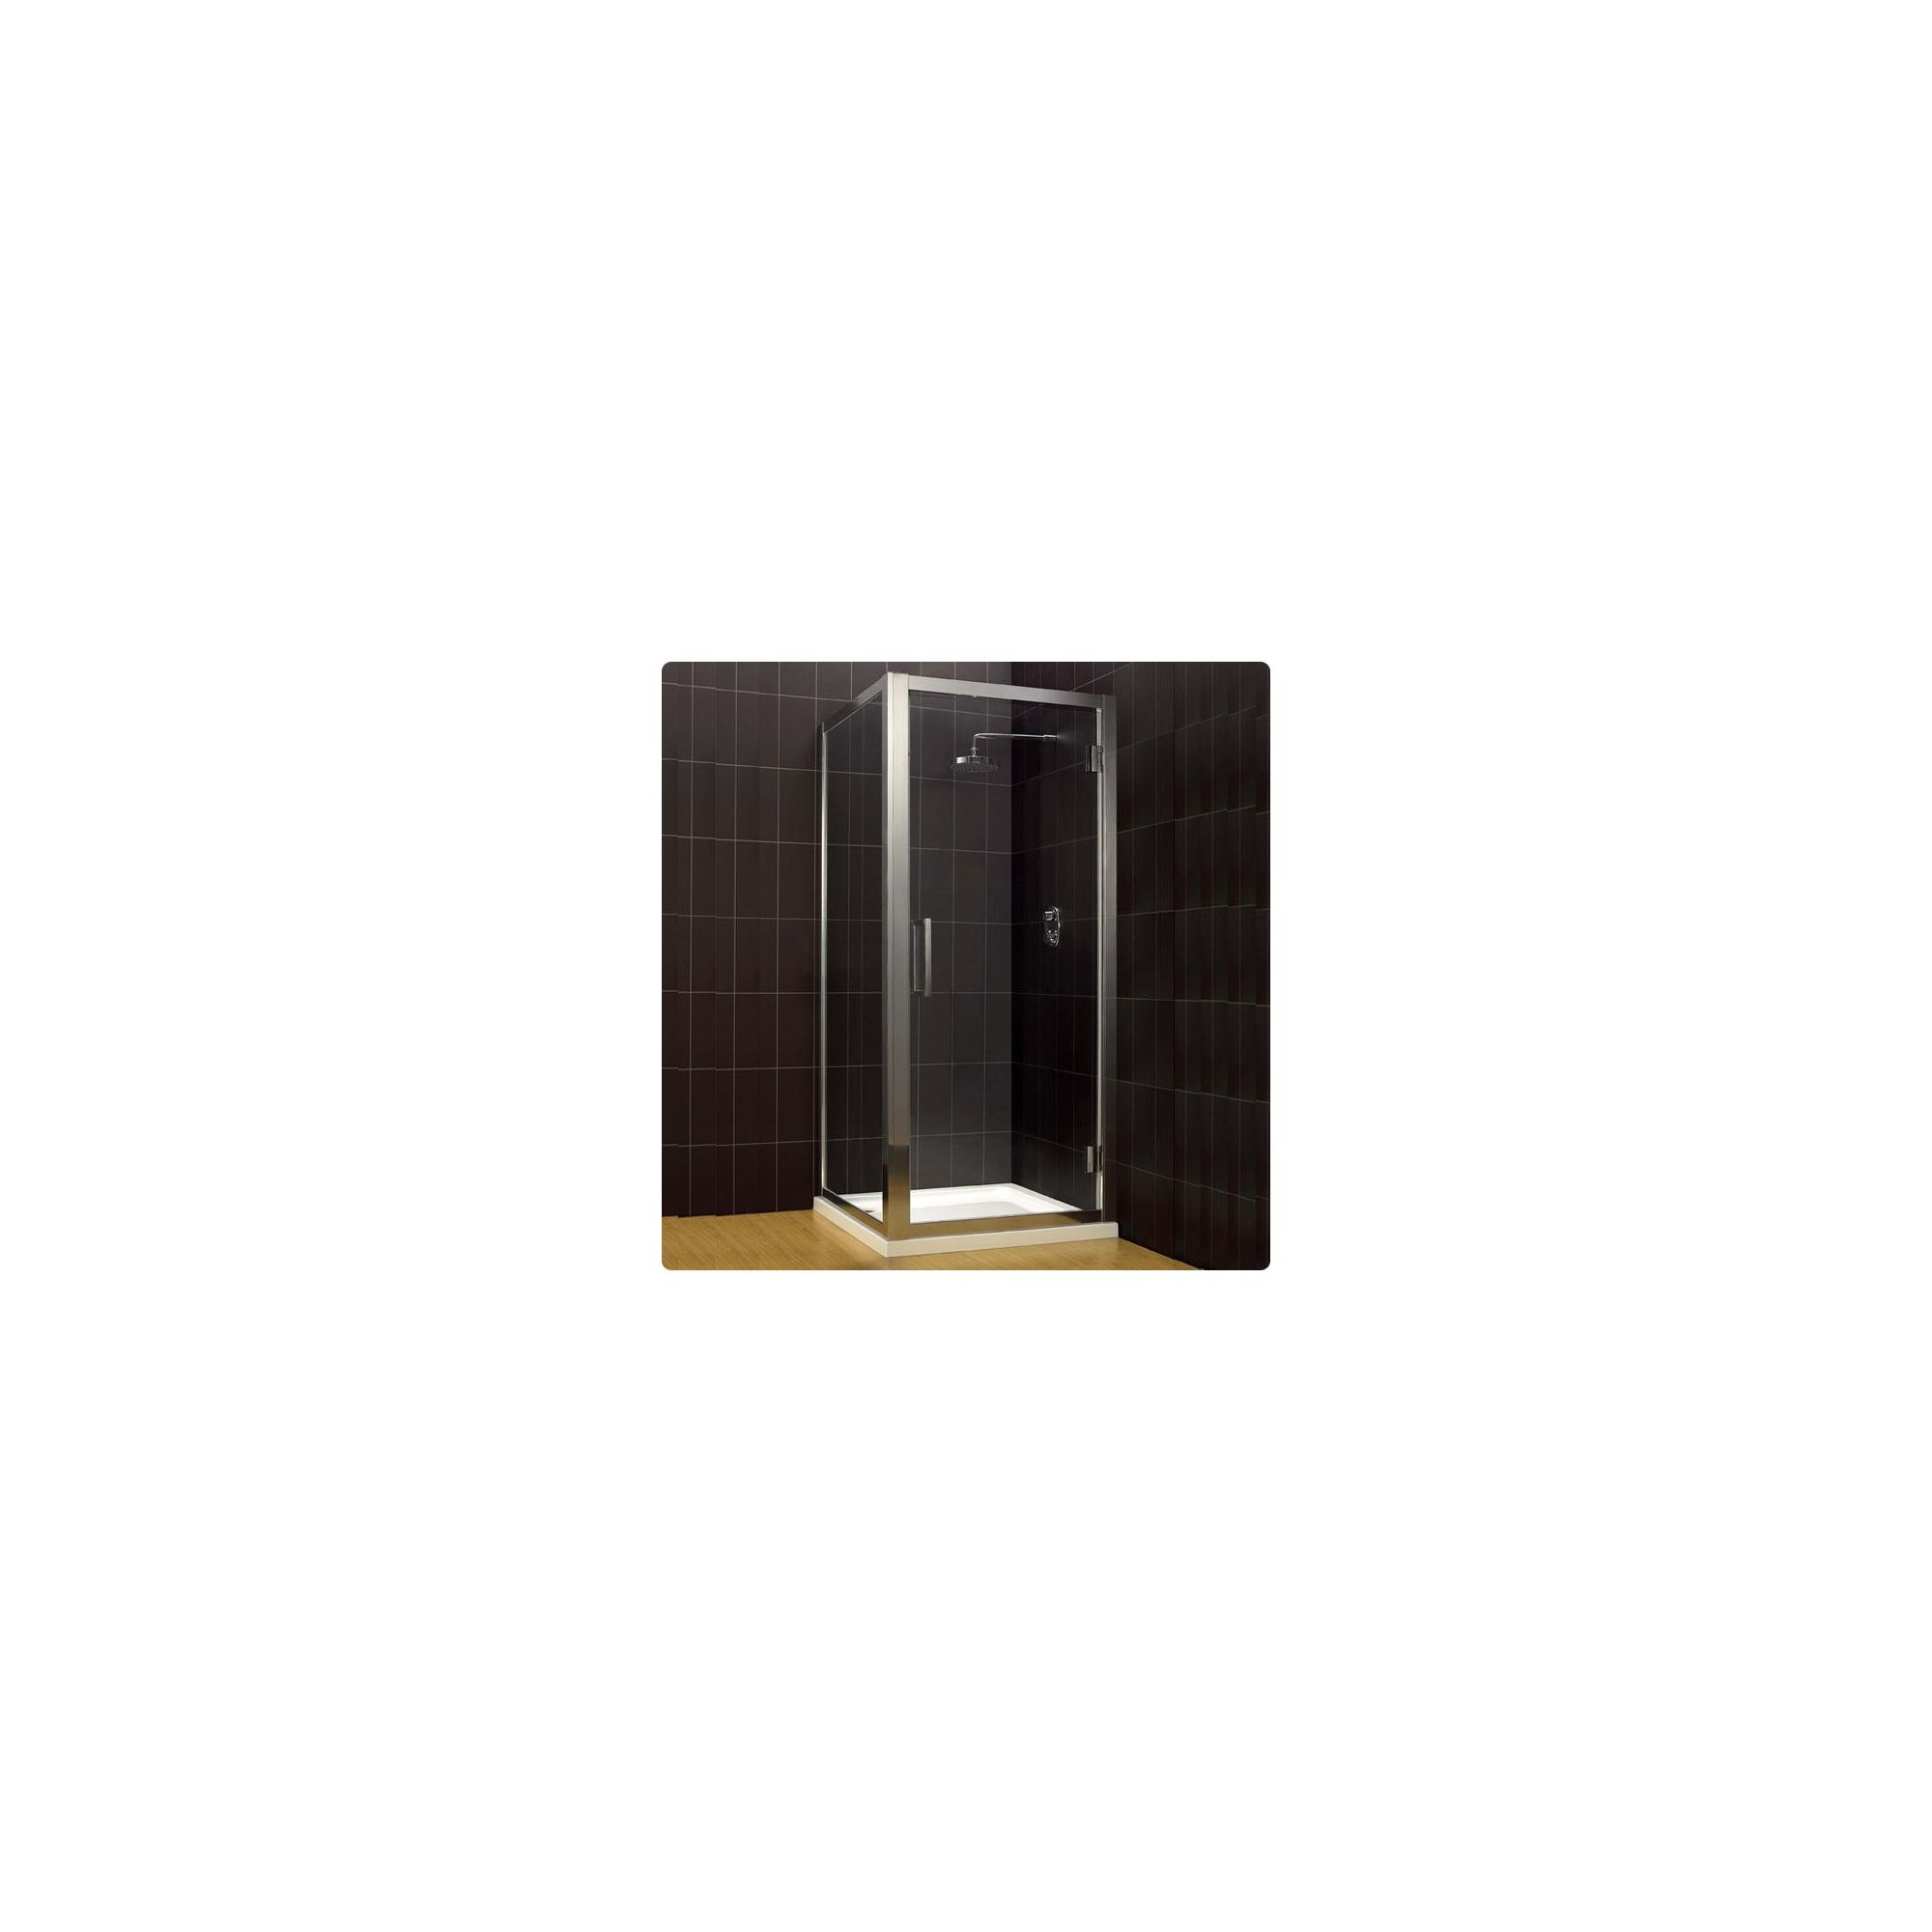 Duchy Supreme Silver Hinged Door Shower Enclosure, 900mm x 700mm, Standard Tray, 8mm Glass at Tesco Direct